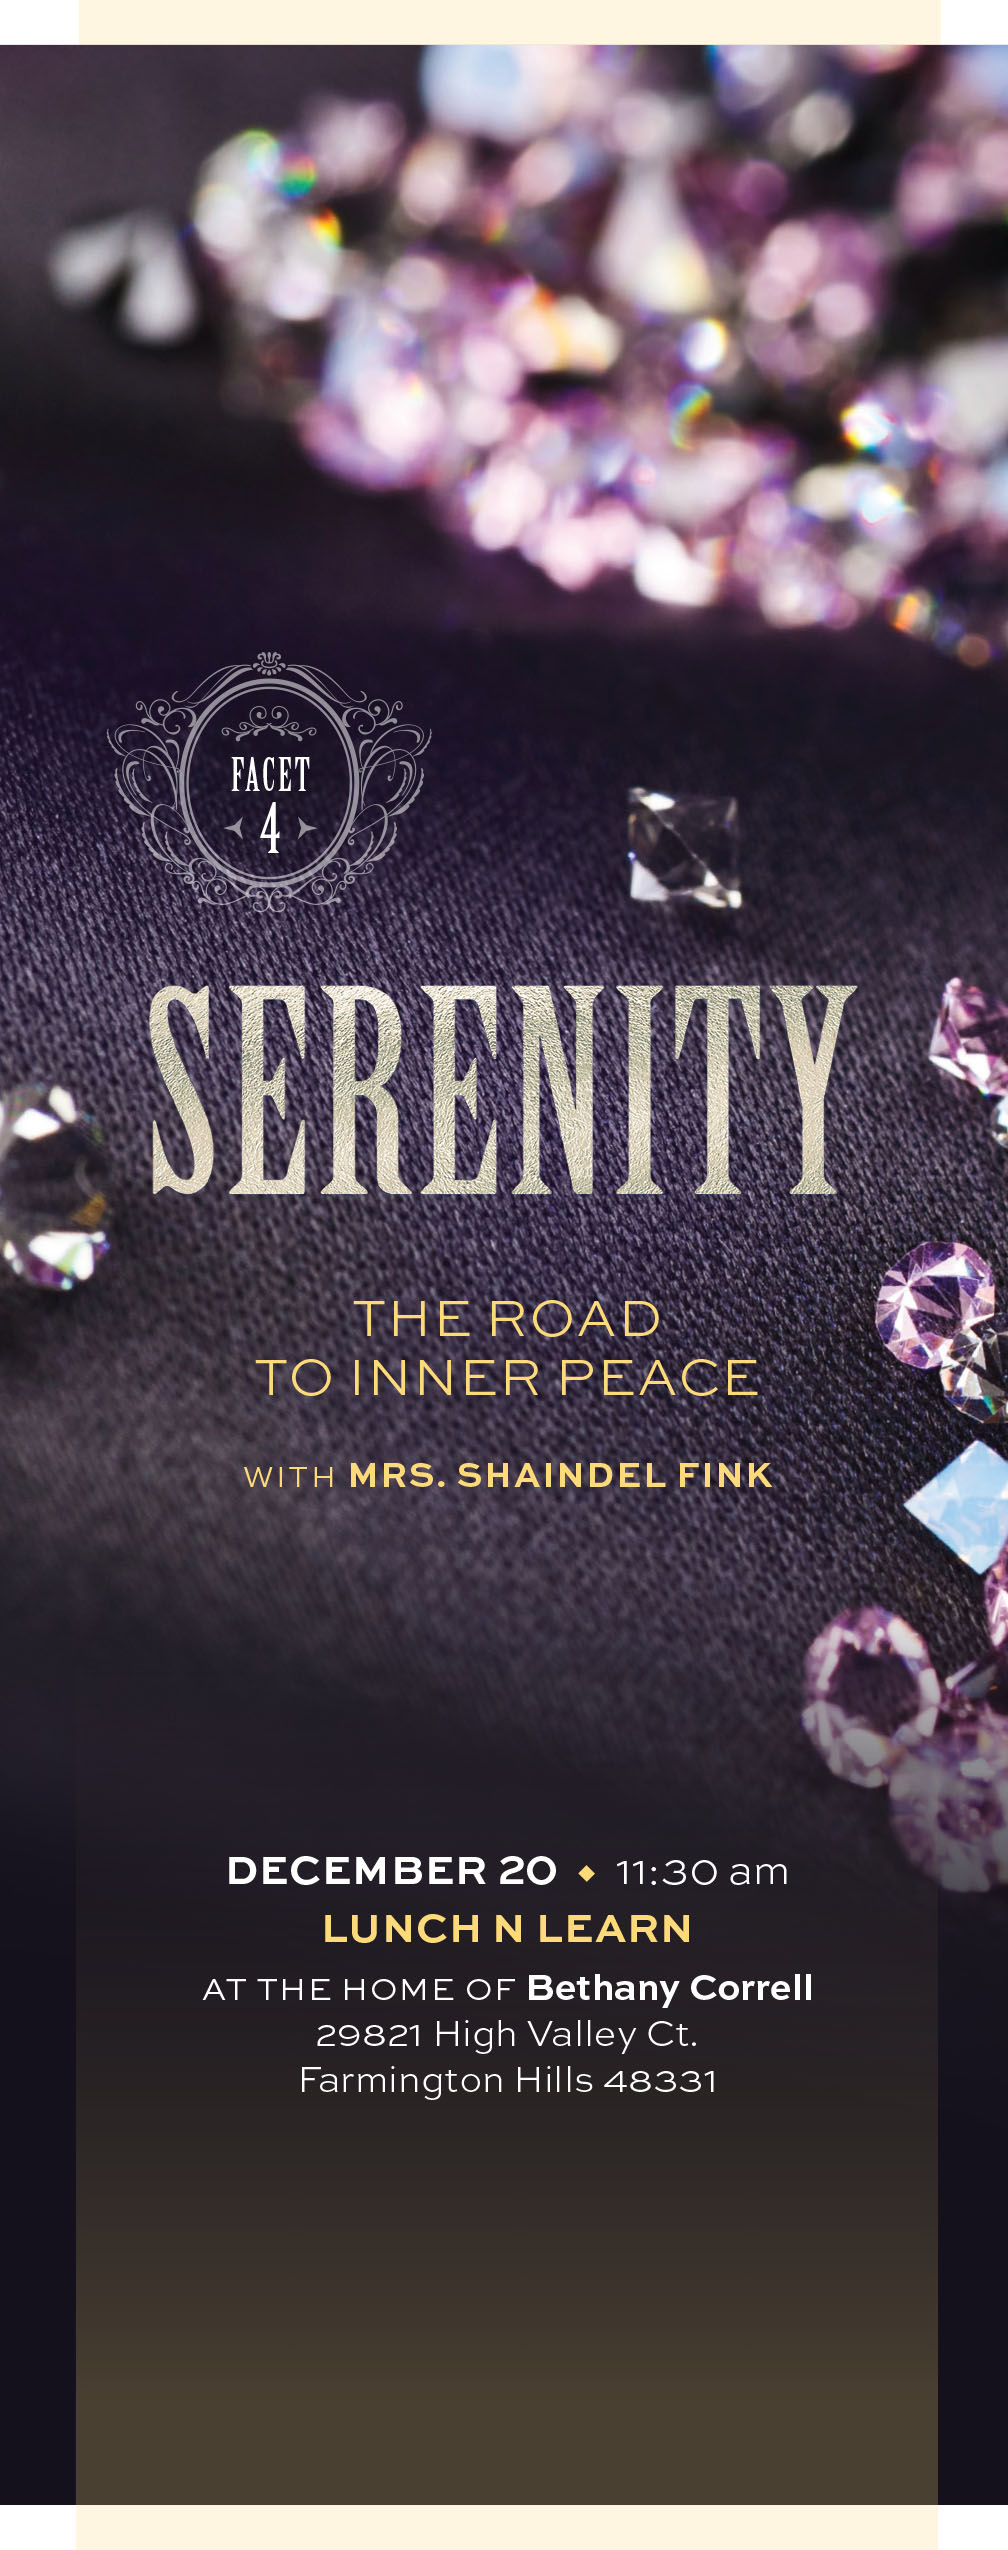 Facets - Serenity: The Road to Inner Peace Lunch 'n Learn